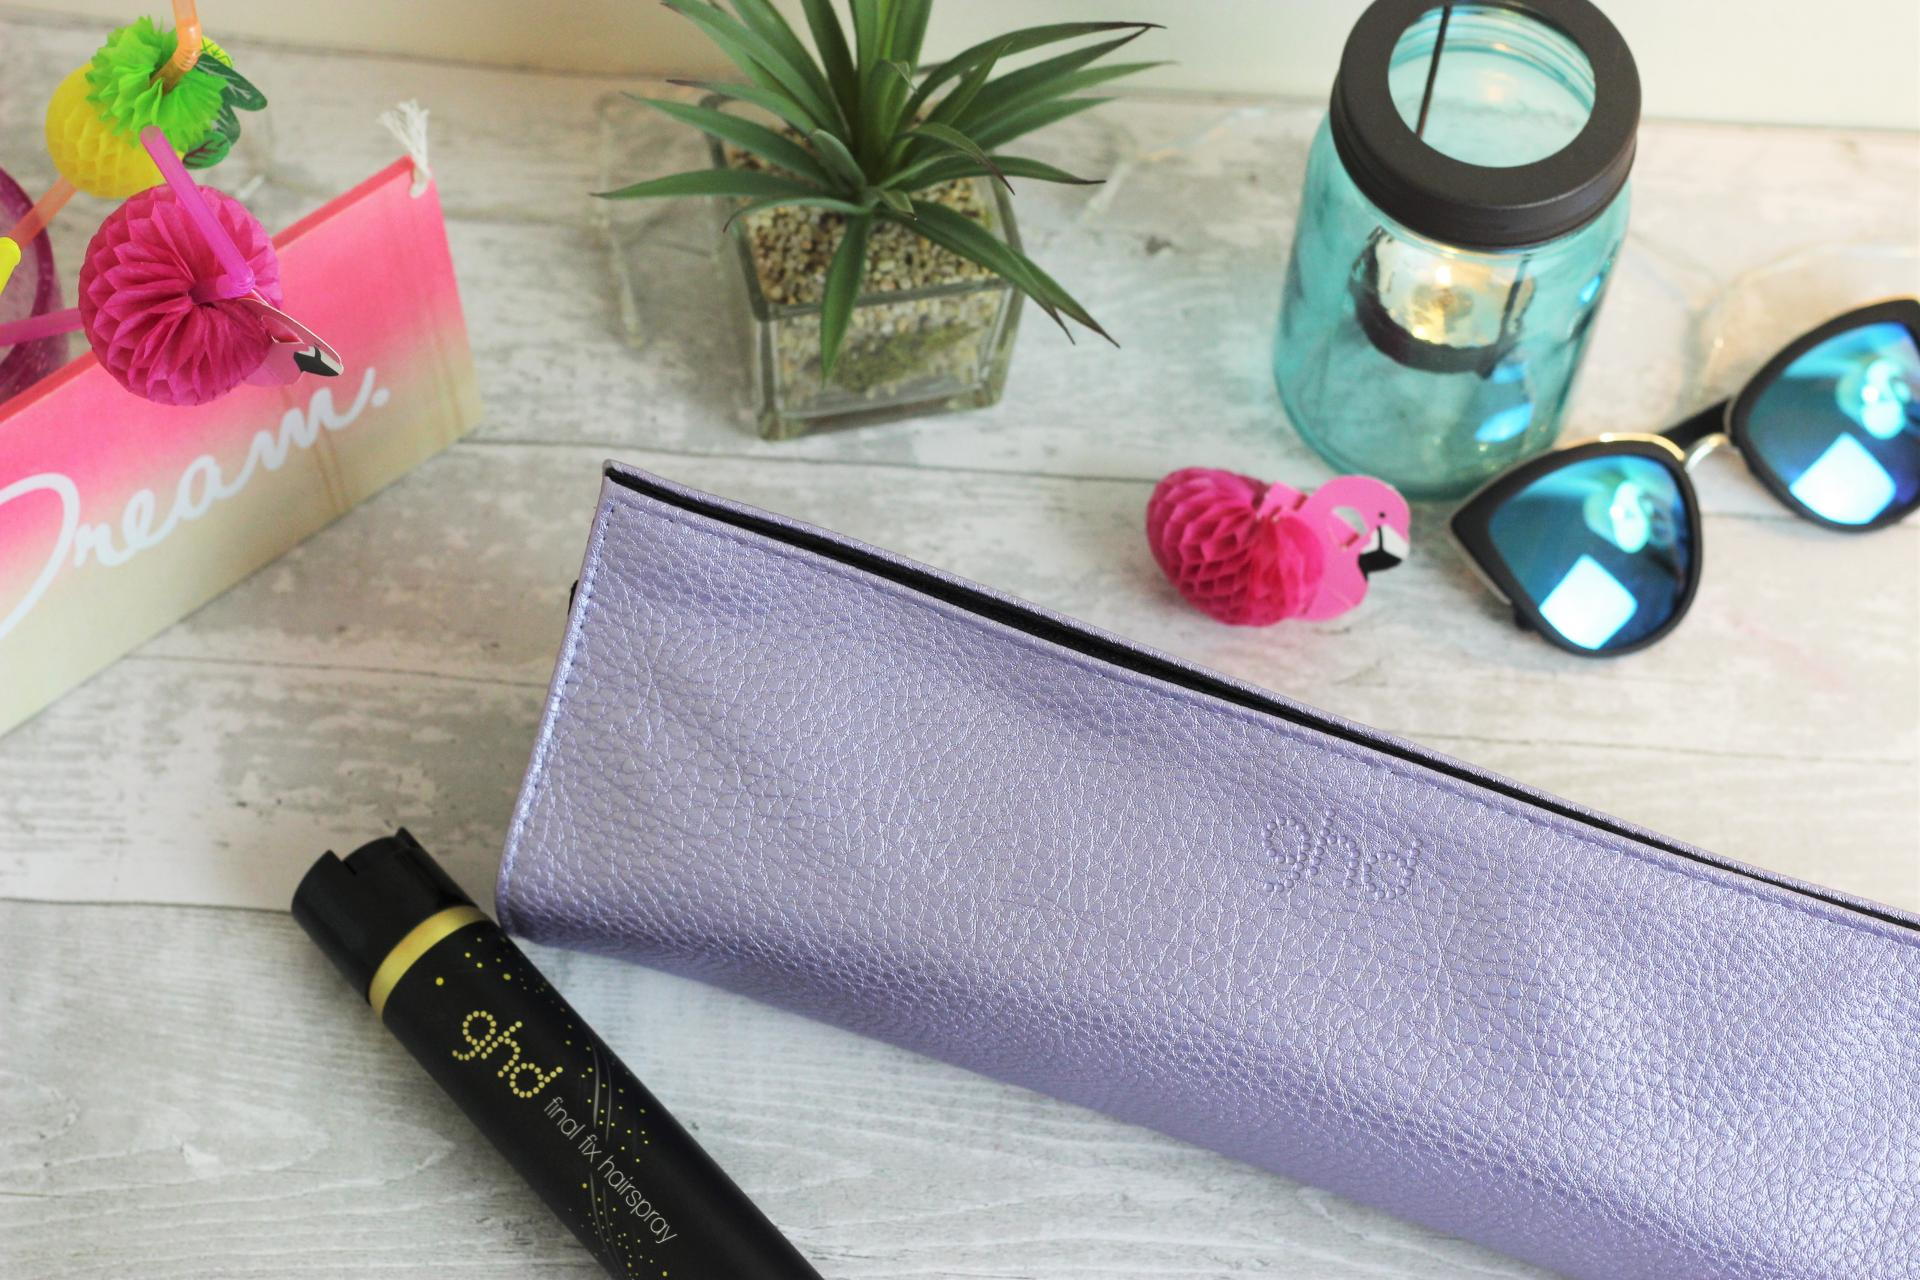 ghd Platinum Styler in Serene Pearl